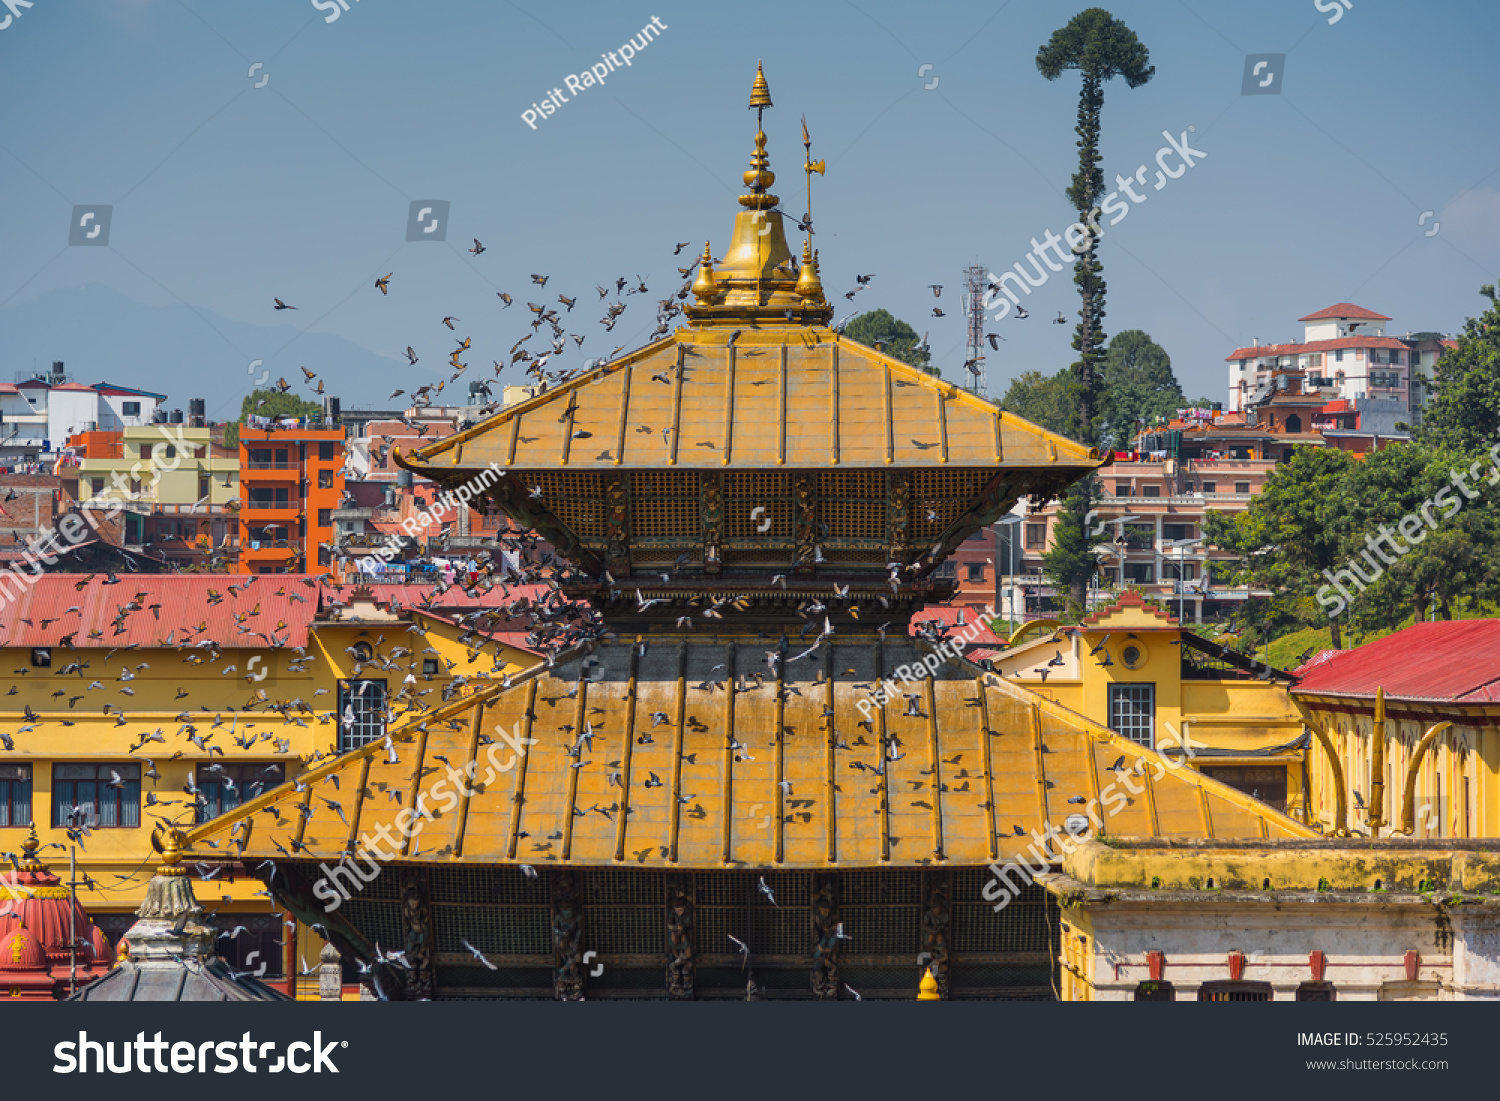 Beautiful Golden Roof at Pashupatinath Temple Kathmandu Nepal. & Beautiful Golden Roof Pashupatinath Temple Kathmandu Stock Photo ... memphite.com